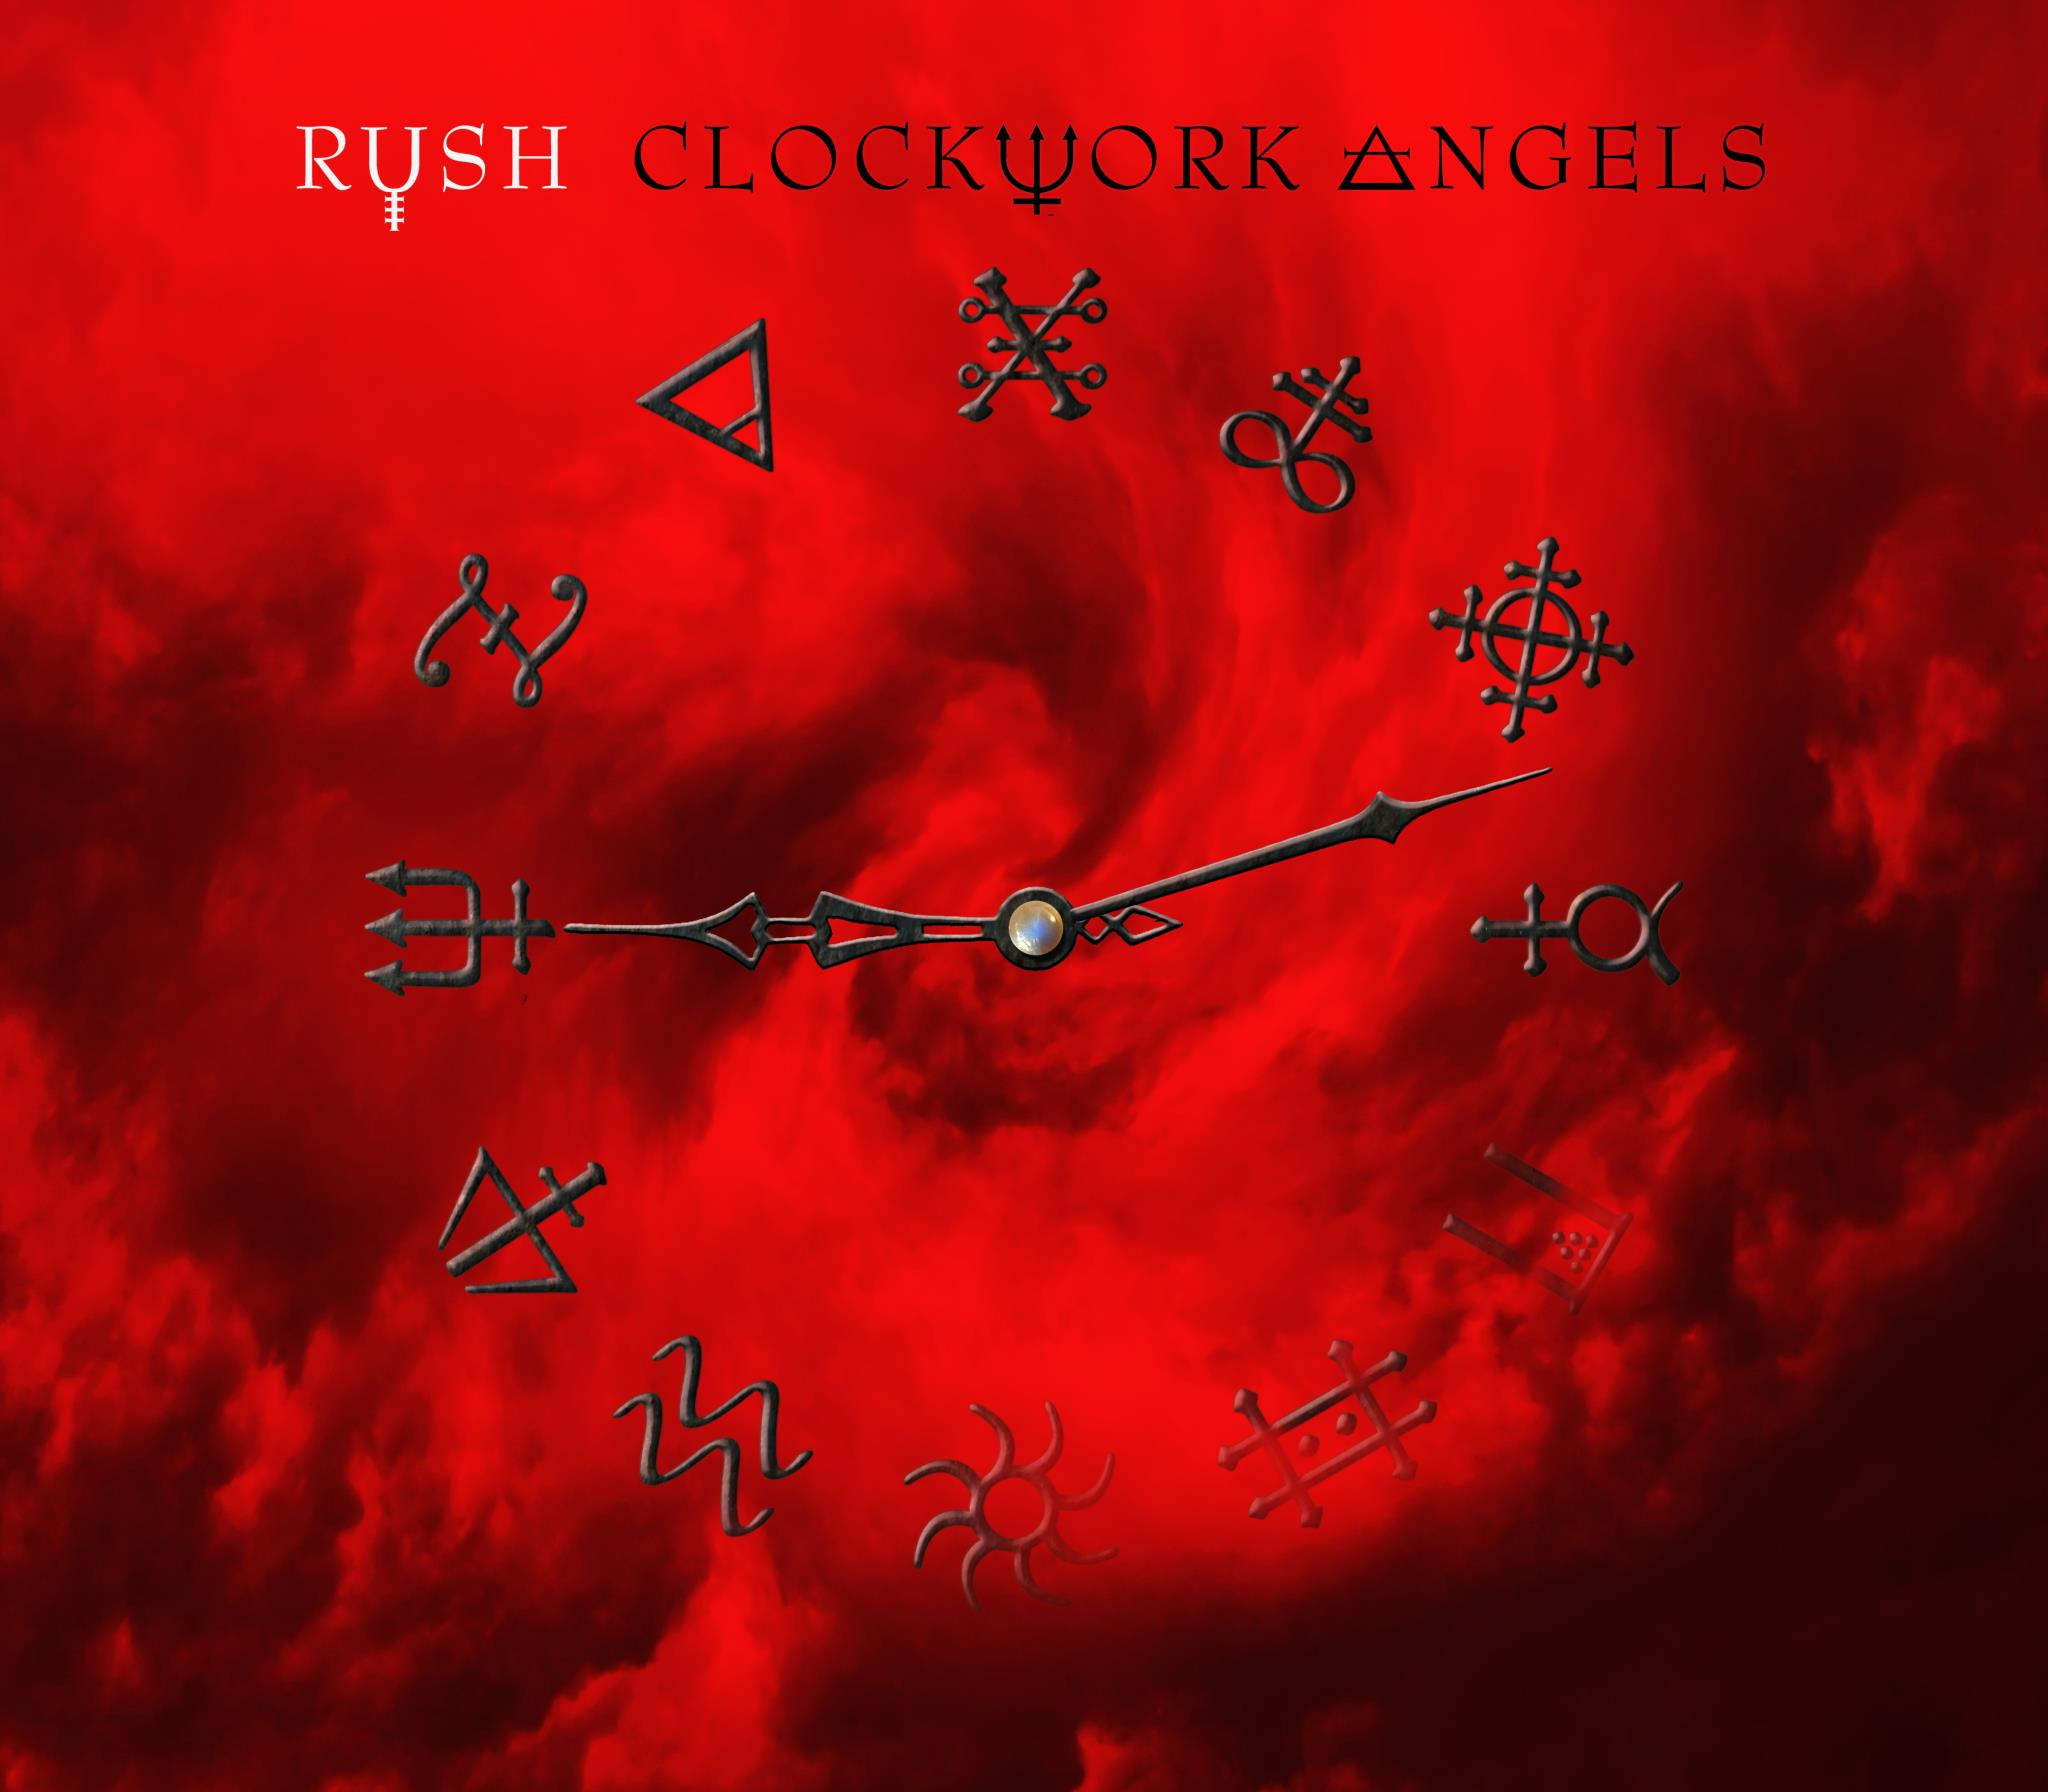 rush_clockworkangels.jpg